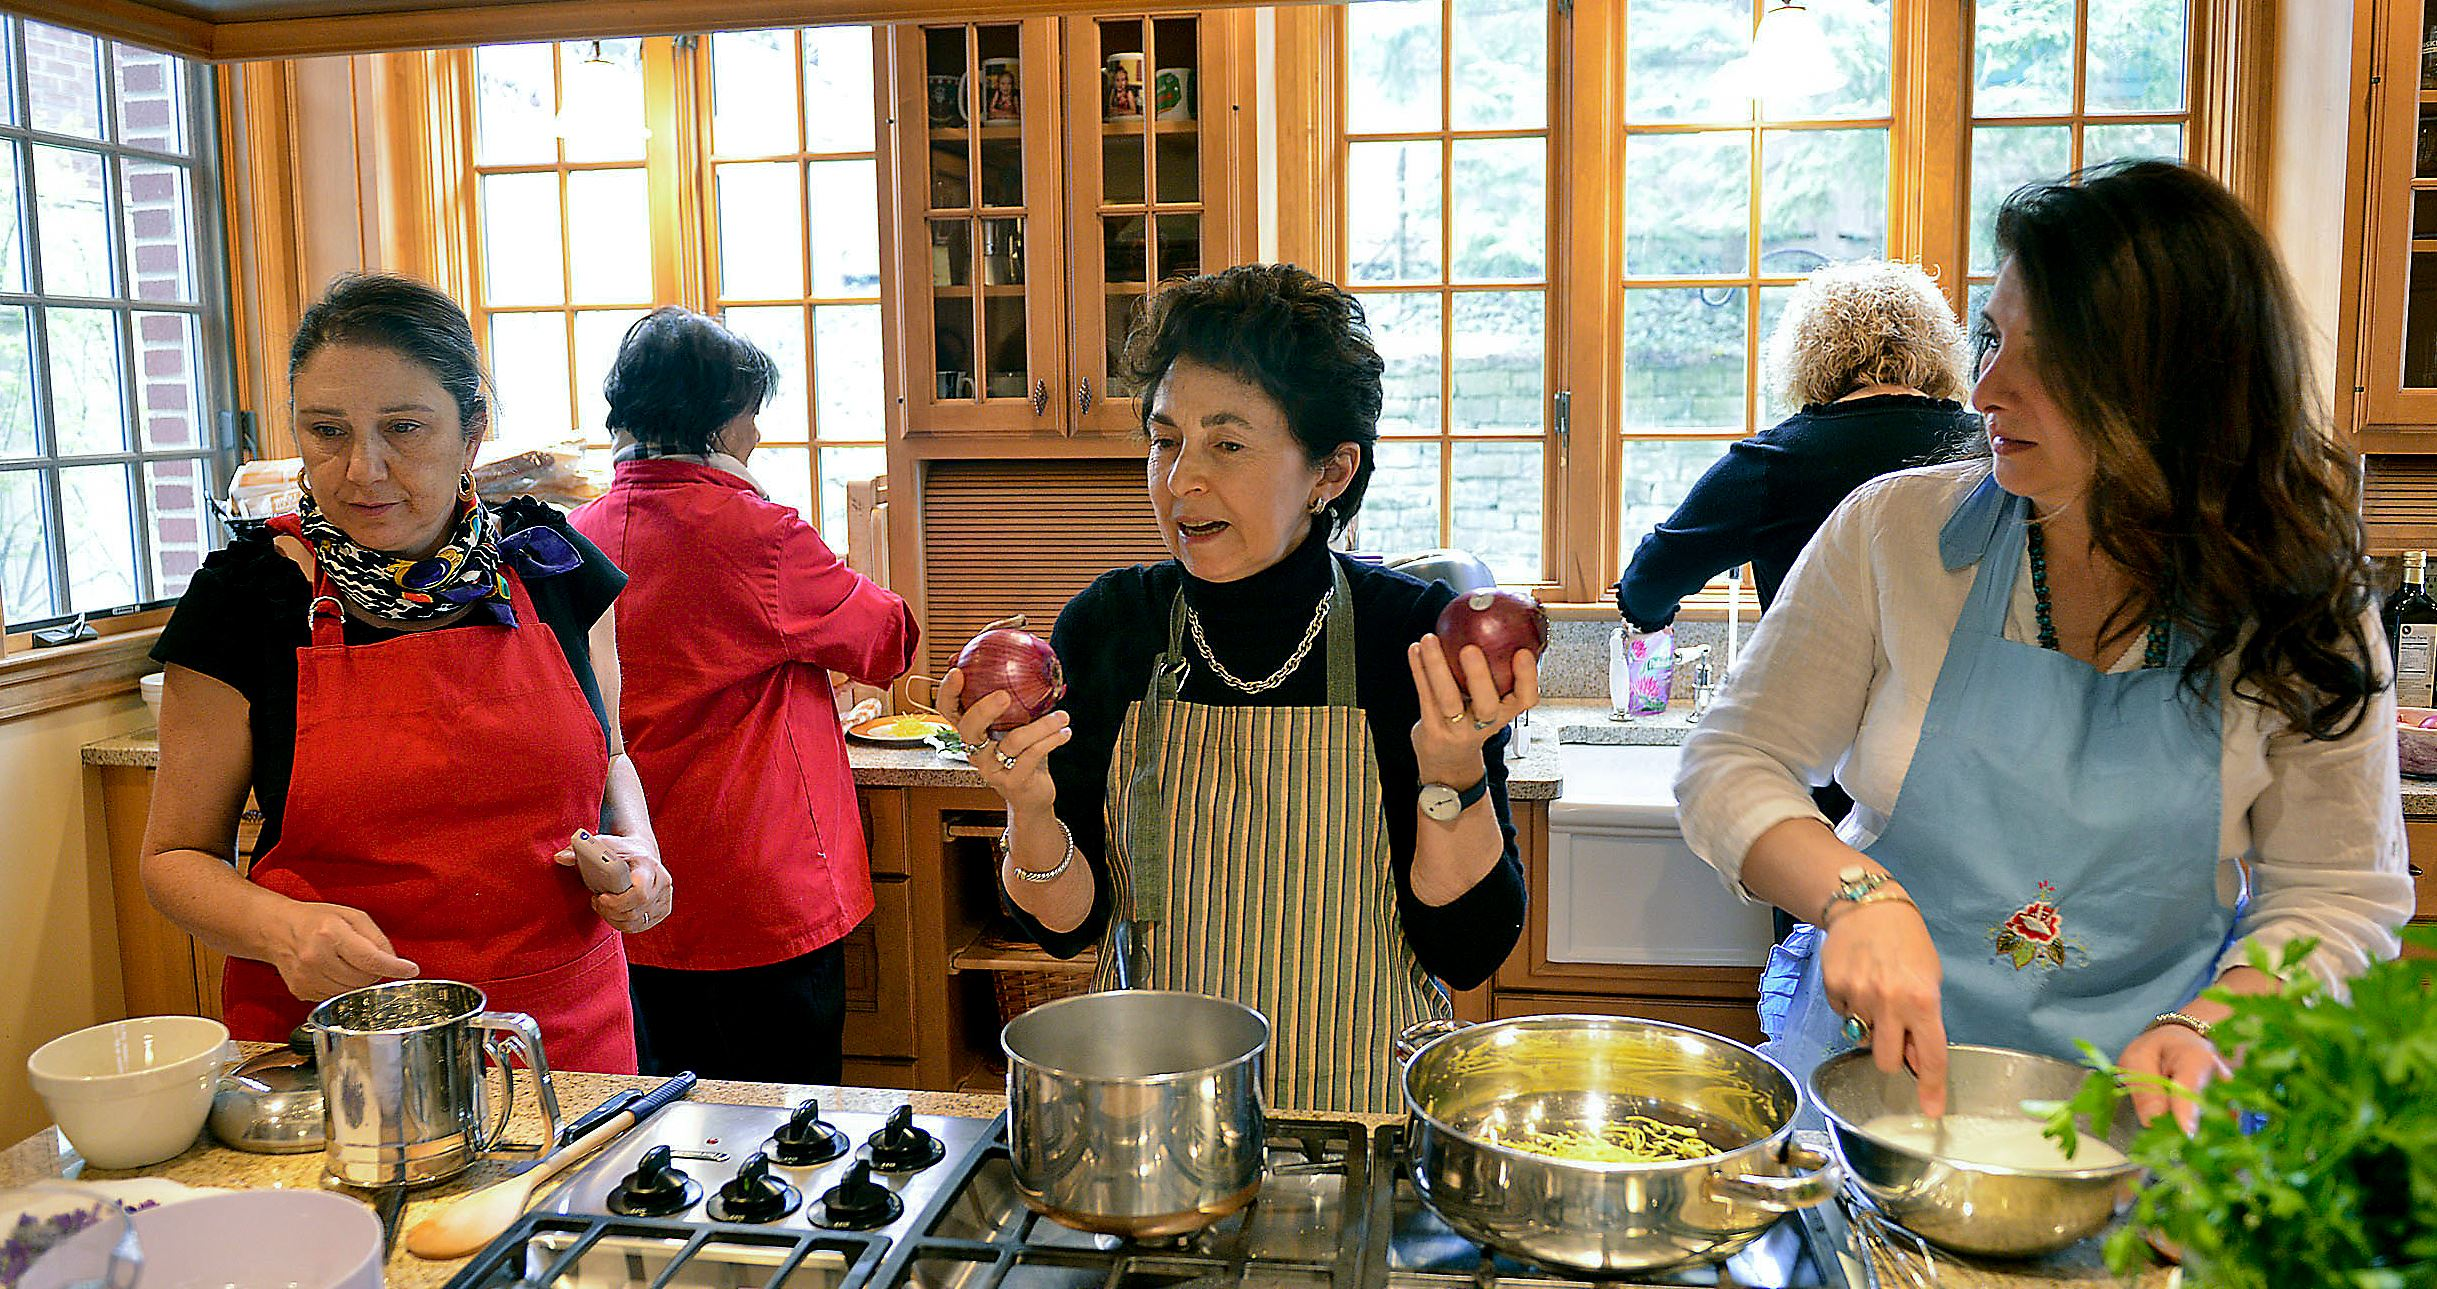 20150423lritalianseen08-4  The Duchess Nicoletta Polo Lanza Tomasi, center, a cooking teacher, talks about using red onions to inject color into a rustic country potato salad as Miki Fato, left, and Patrizia Cost-Frezza, right, listen.